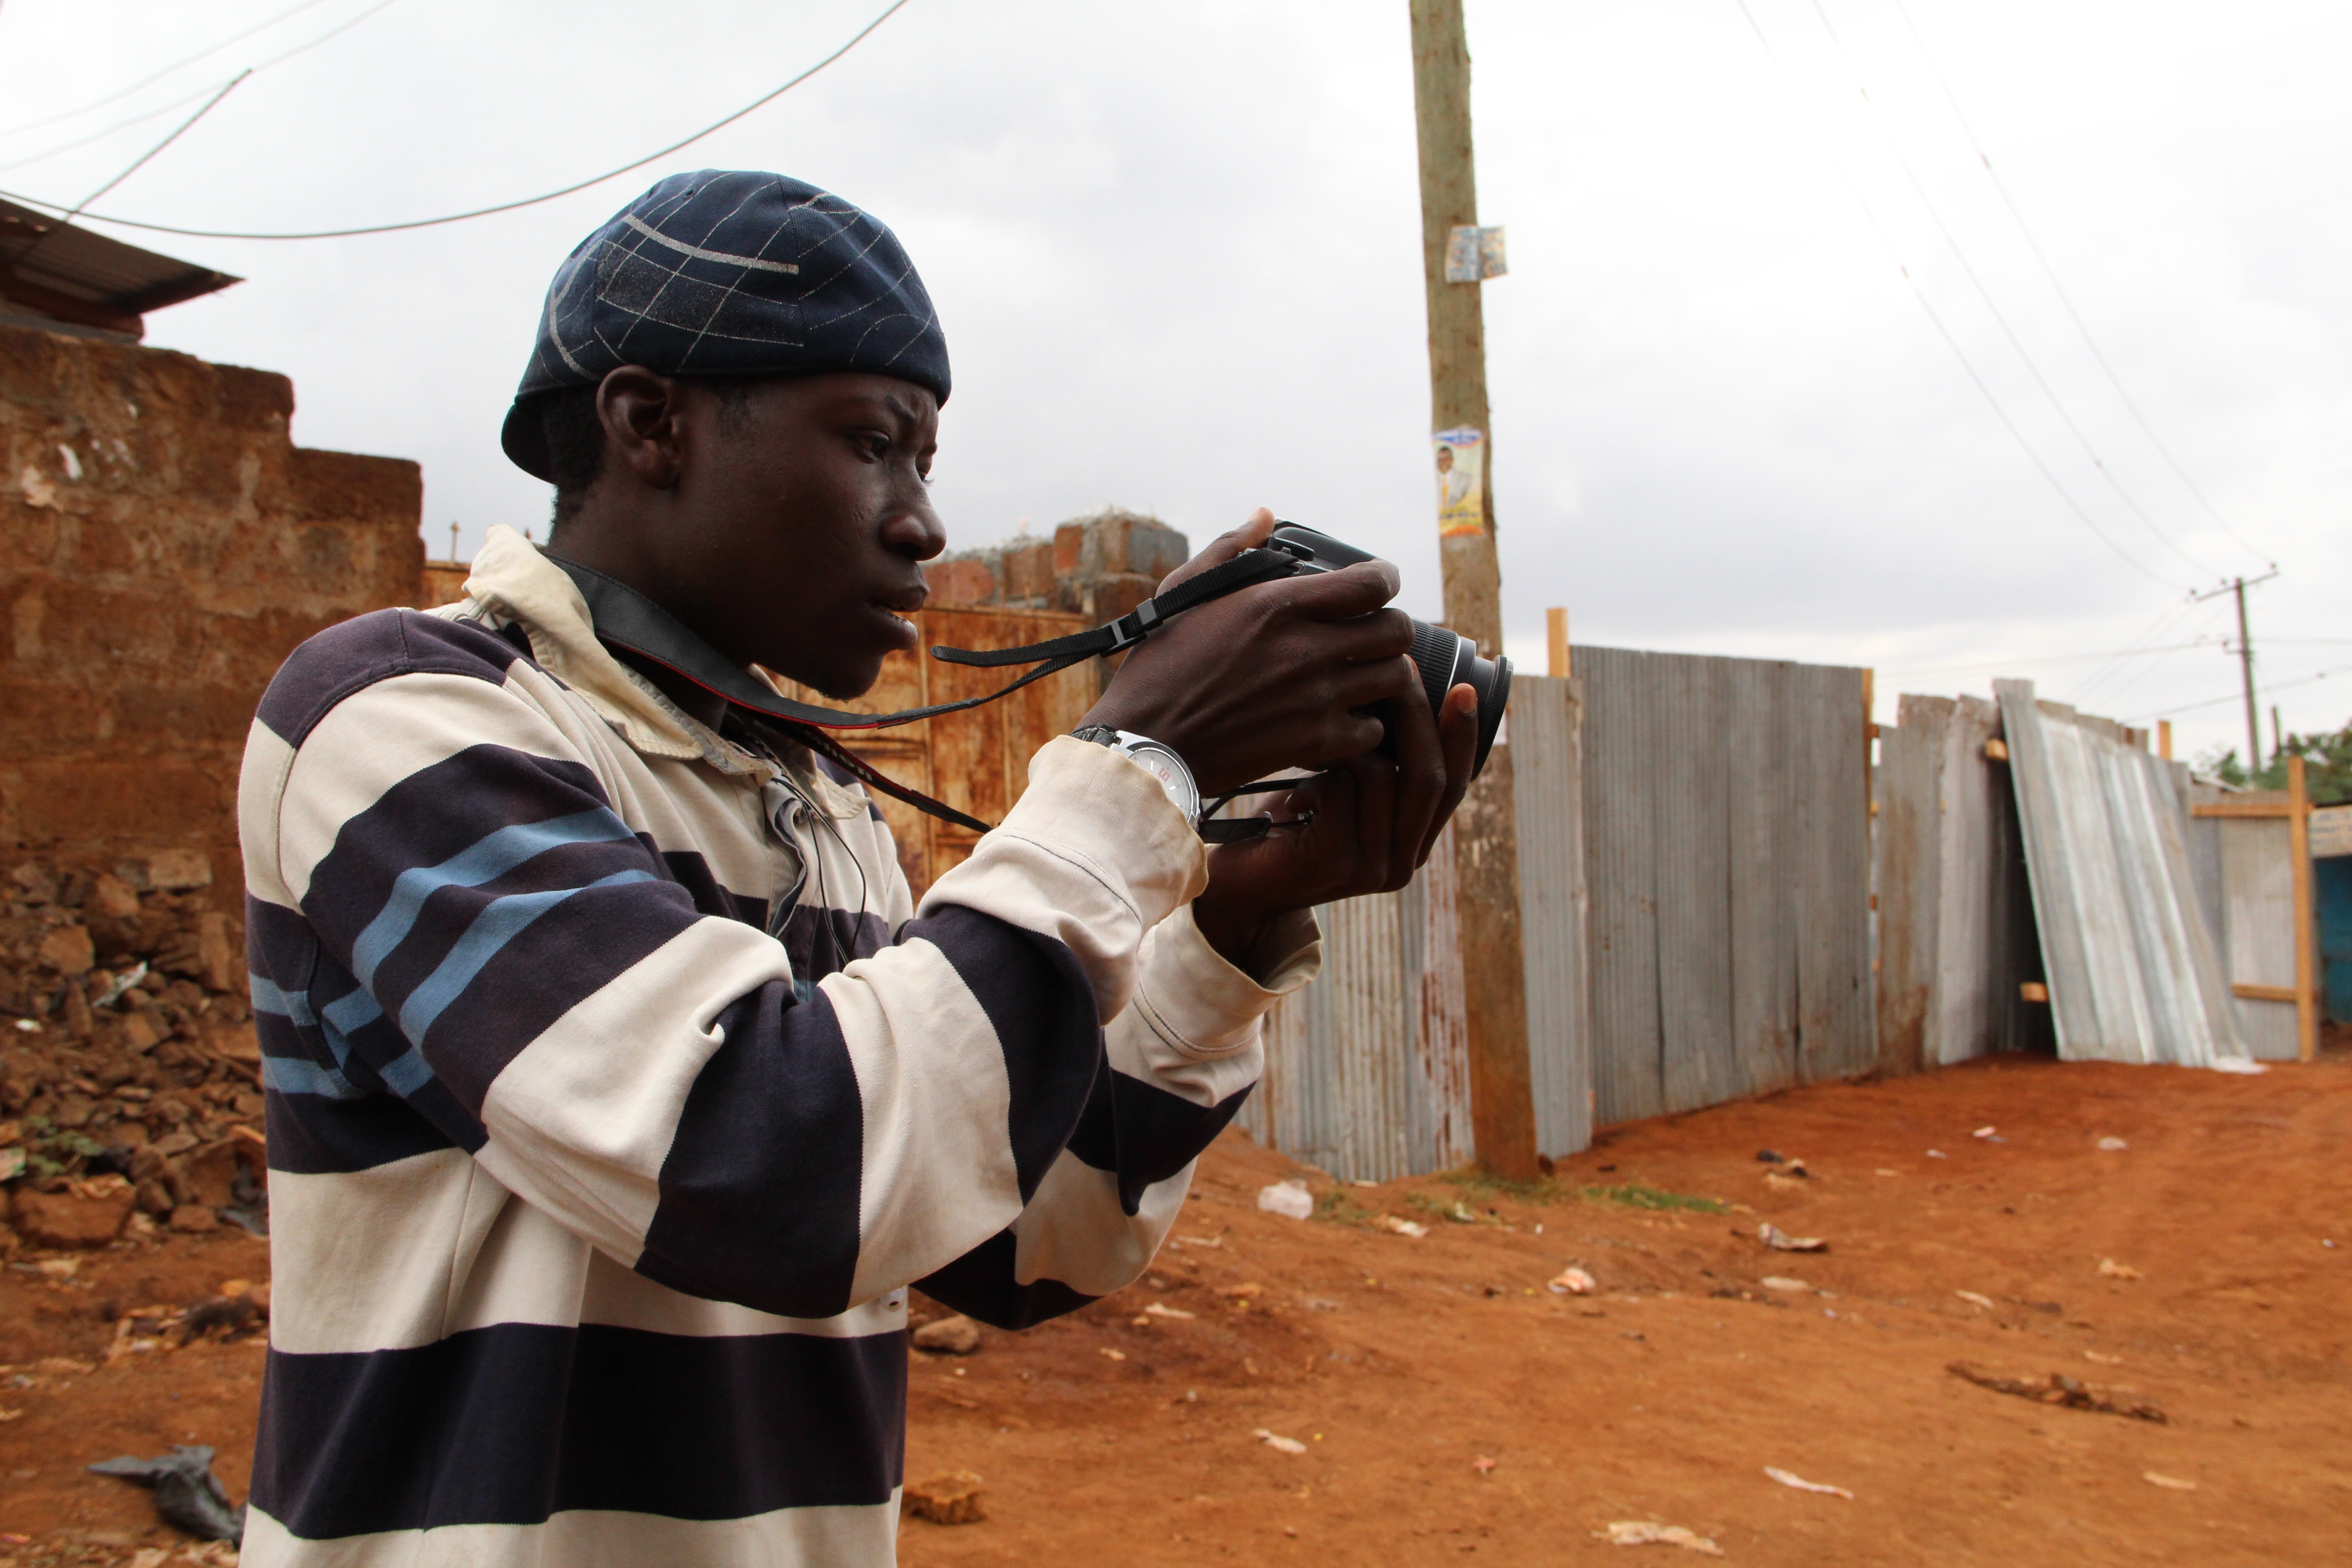 Abbas practices taking pictures with Habari Kibra's only camera. His true passion, though, is making radio.